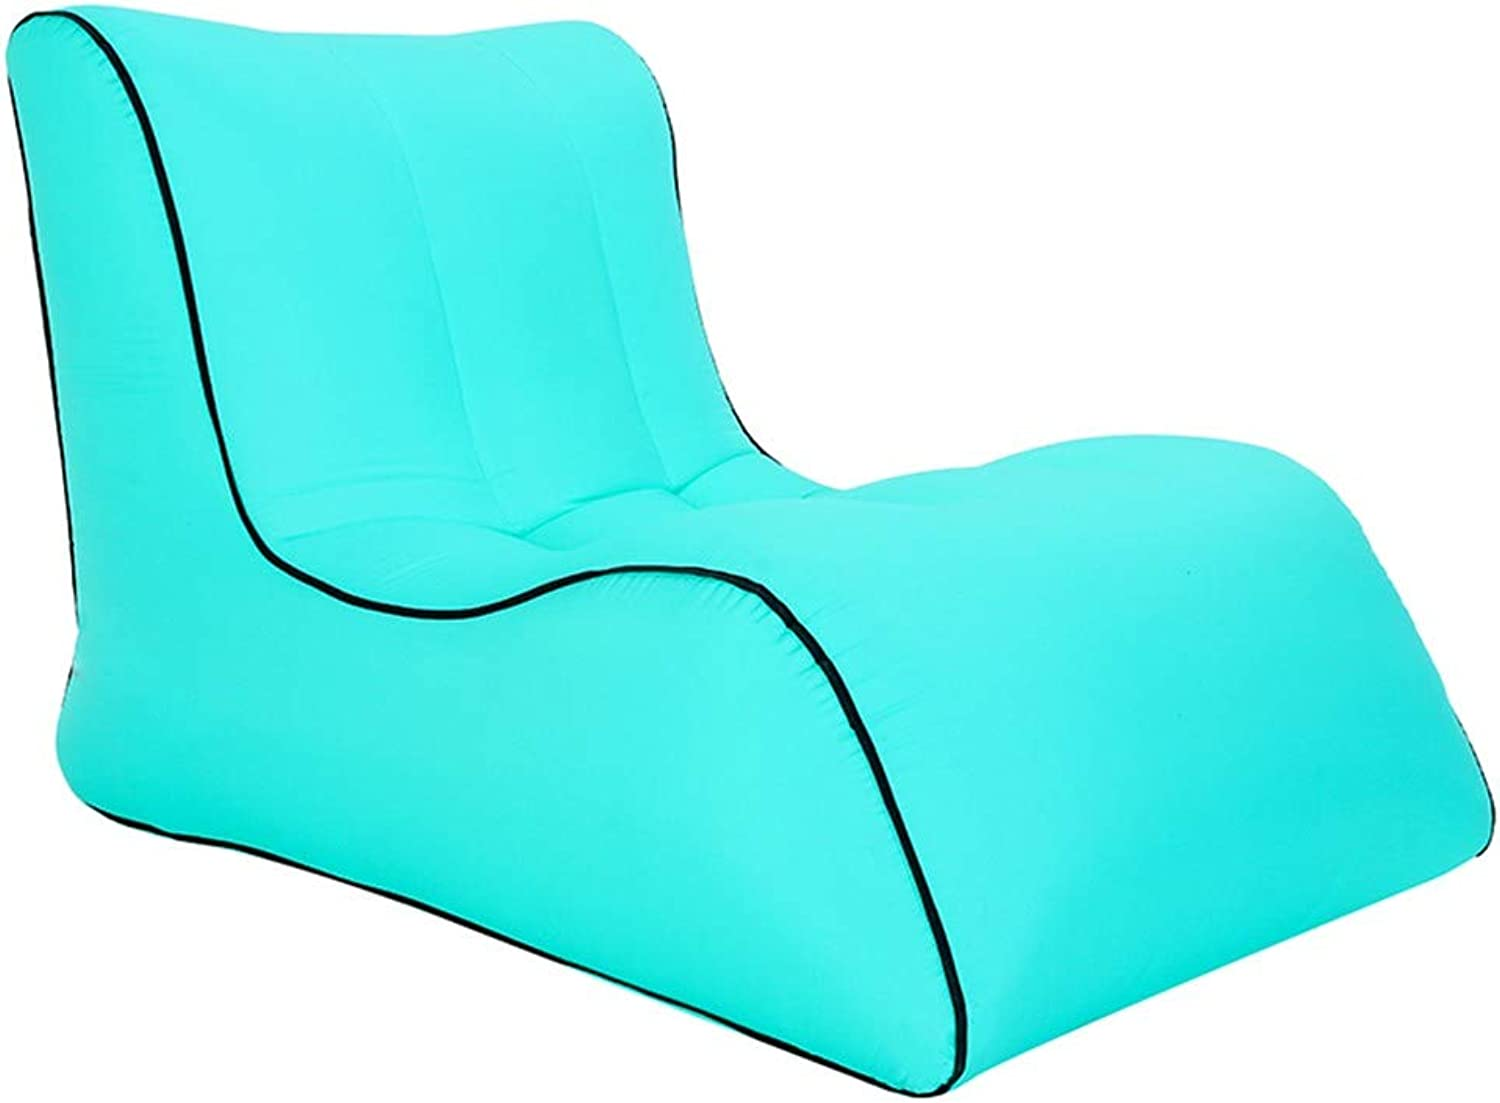 Portable Single Sofa Inflatable Waterproof Air with Thicker Fabric Lazy Couch Chair Outdoor Lounger for Camping Hiking Swimming Pool Beach Hold Up to 500lb